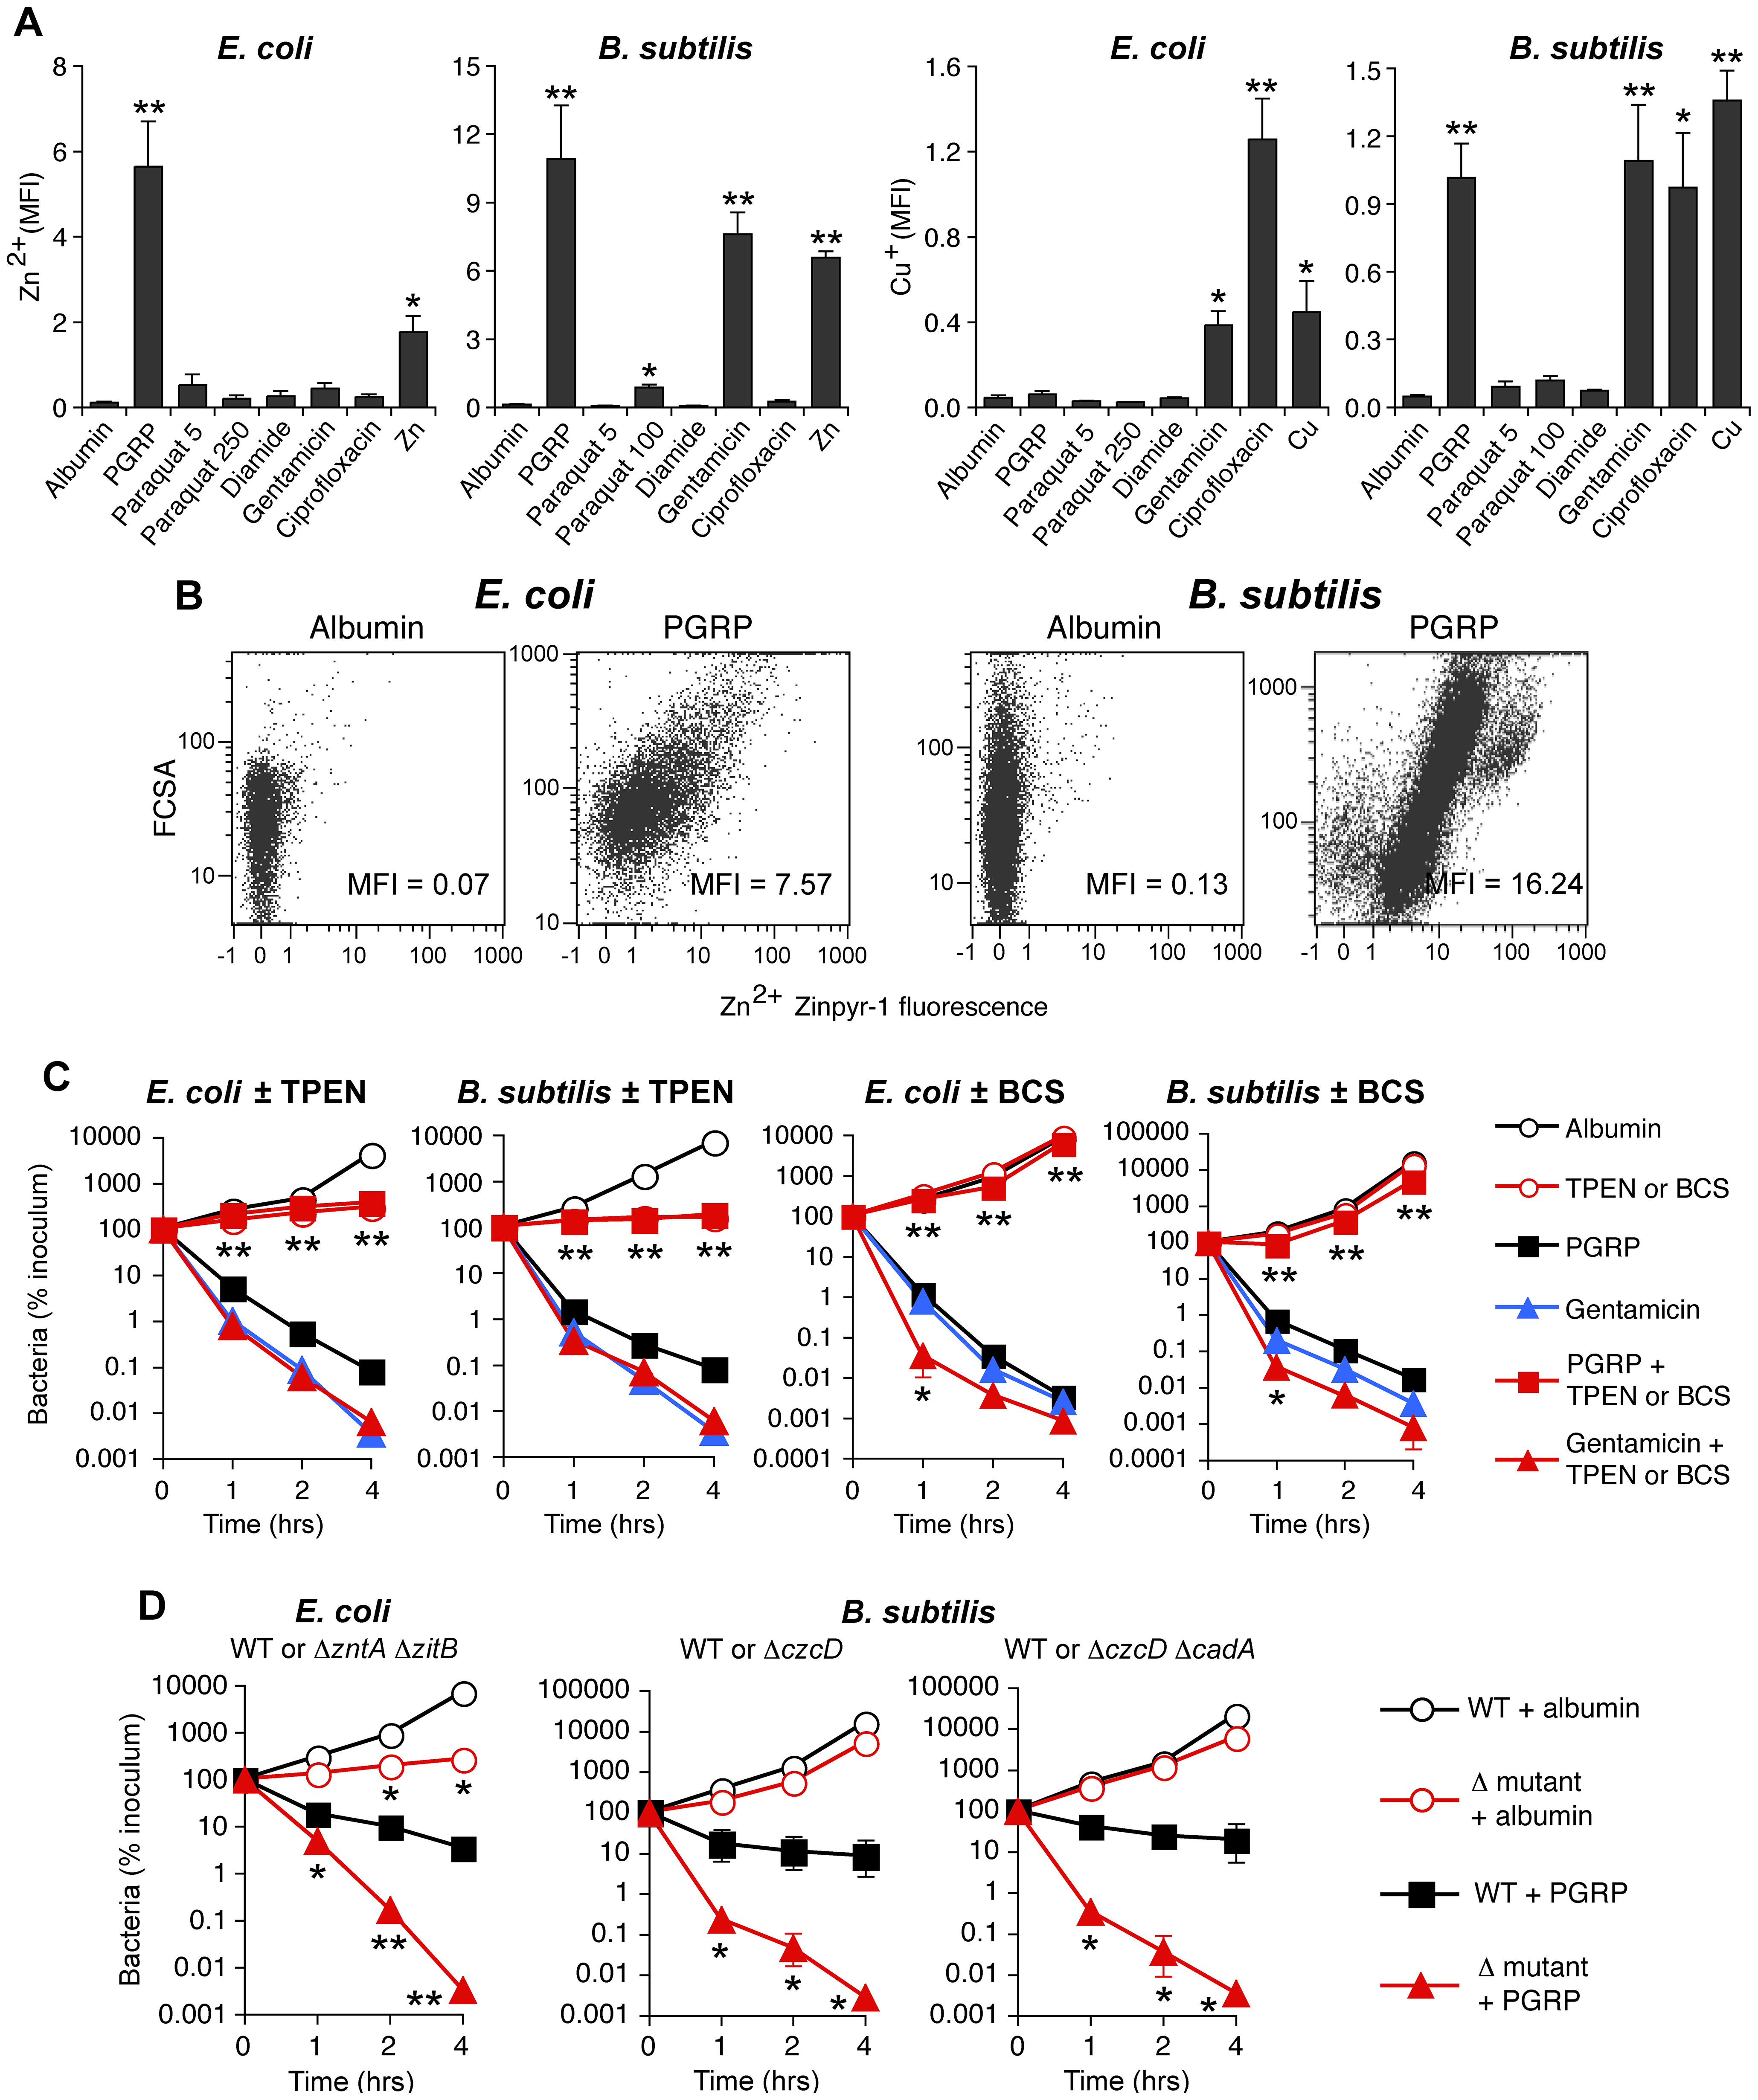 PGRP induces increase in intracellular Zn and Cu, and Zn and Cu are required for killing by PGRP but not by gentamicin.